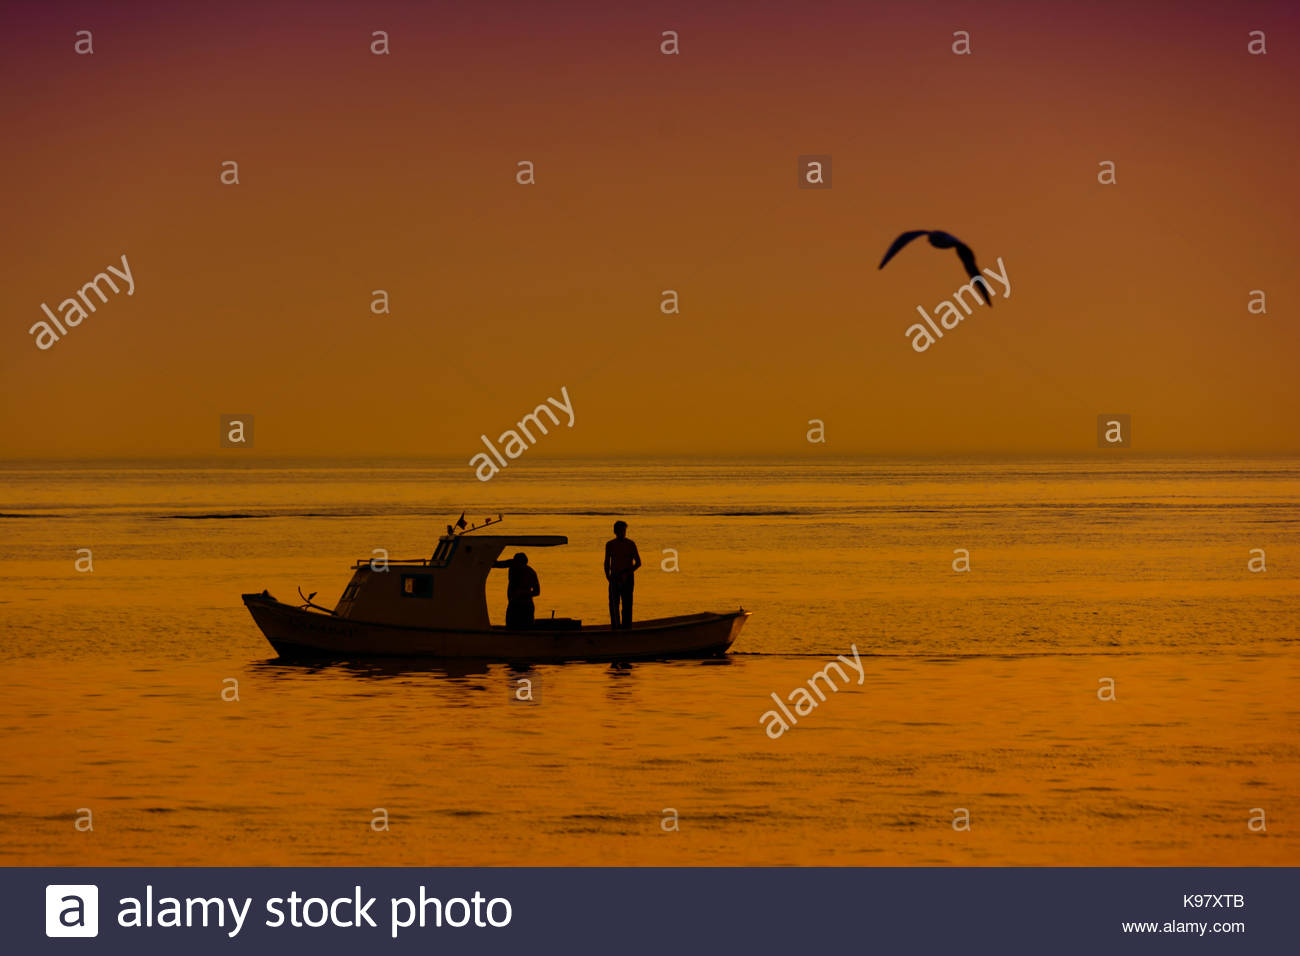 fisherman and boat on sea with seagull sillhouette landscape photography - Stock Image